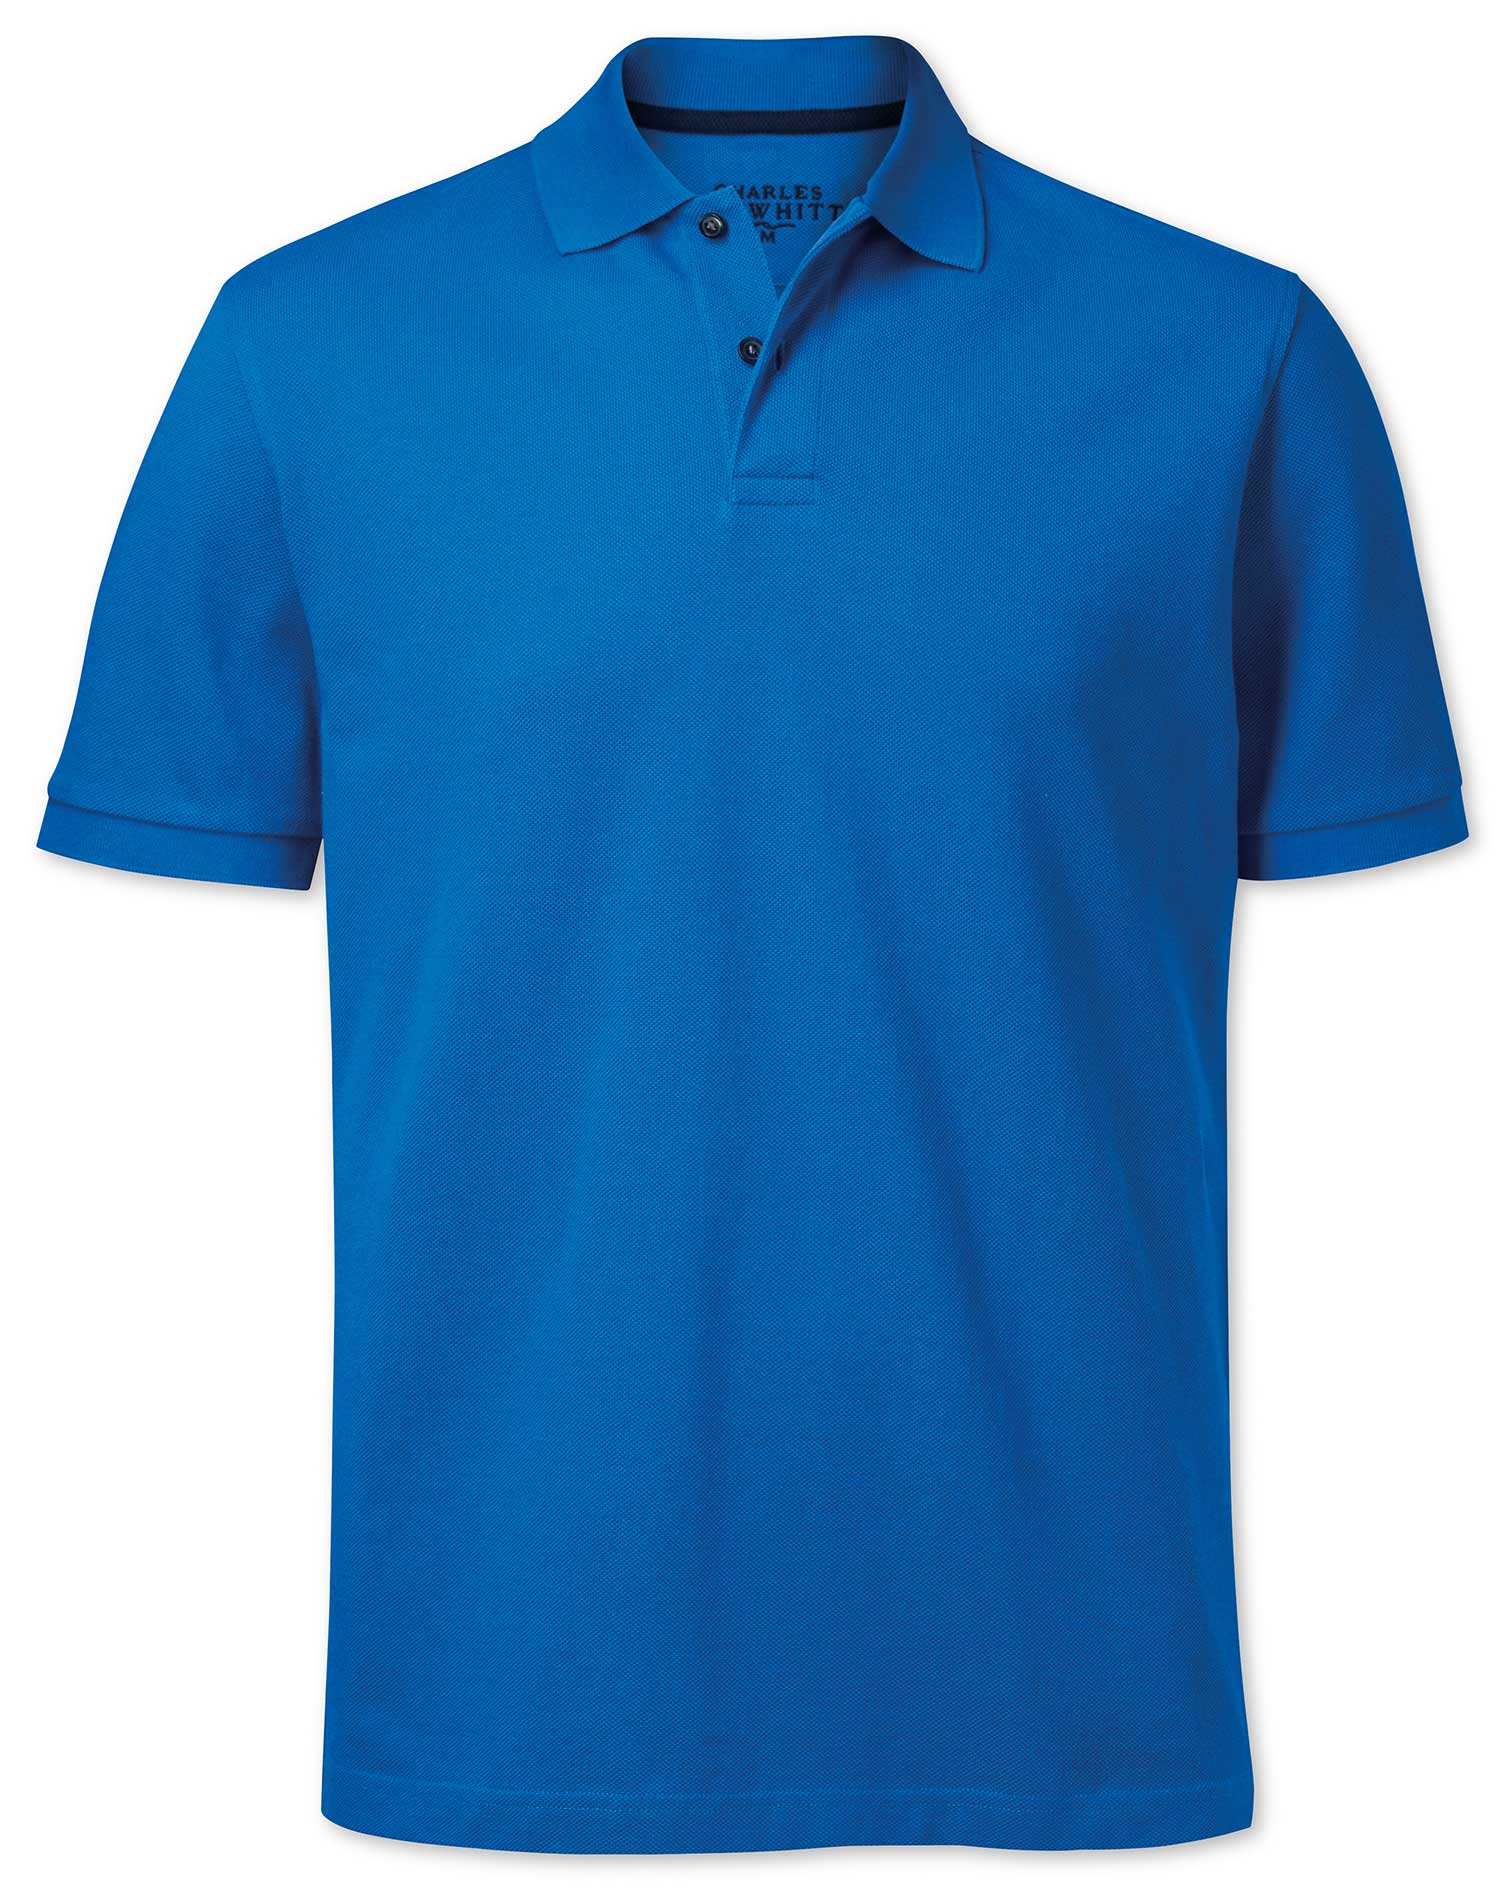 Bright Blue Pique Cotton Polo Size XS by Charles Tyrwhitt